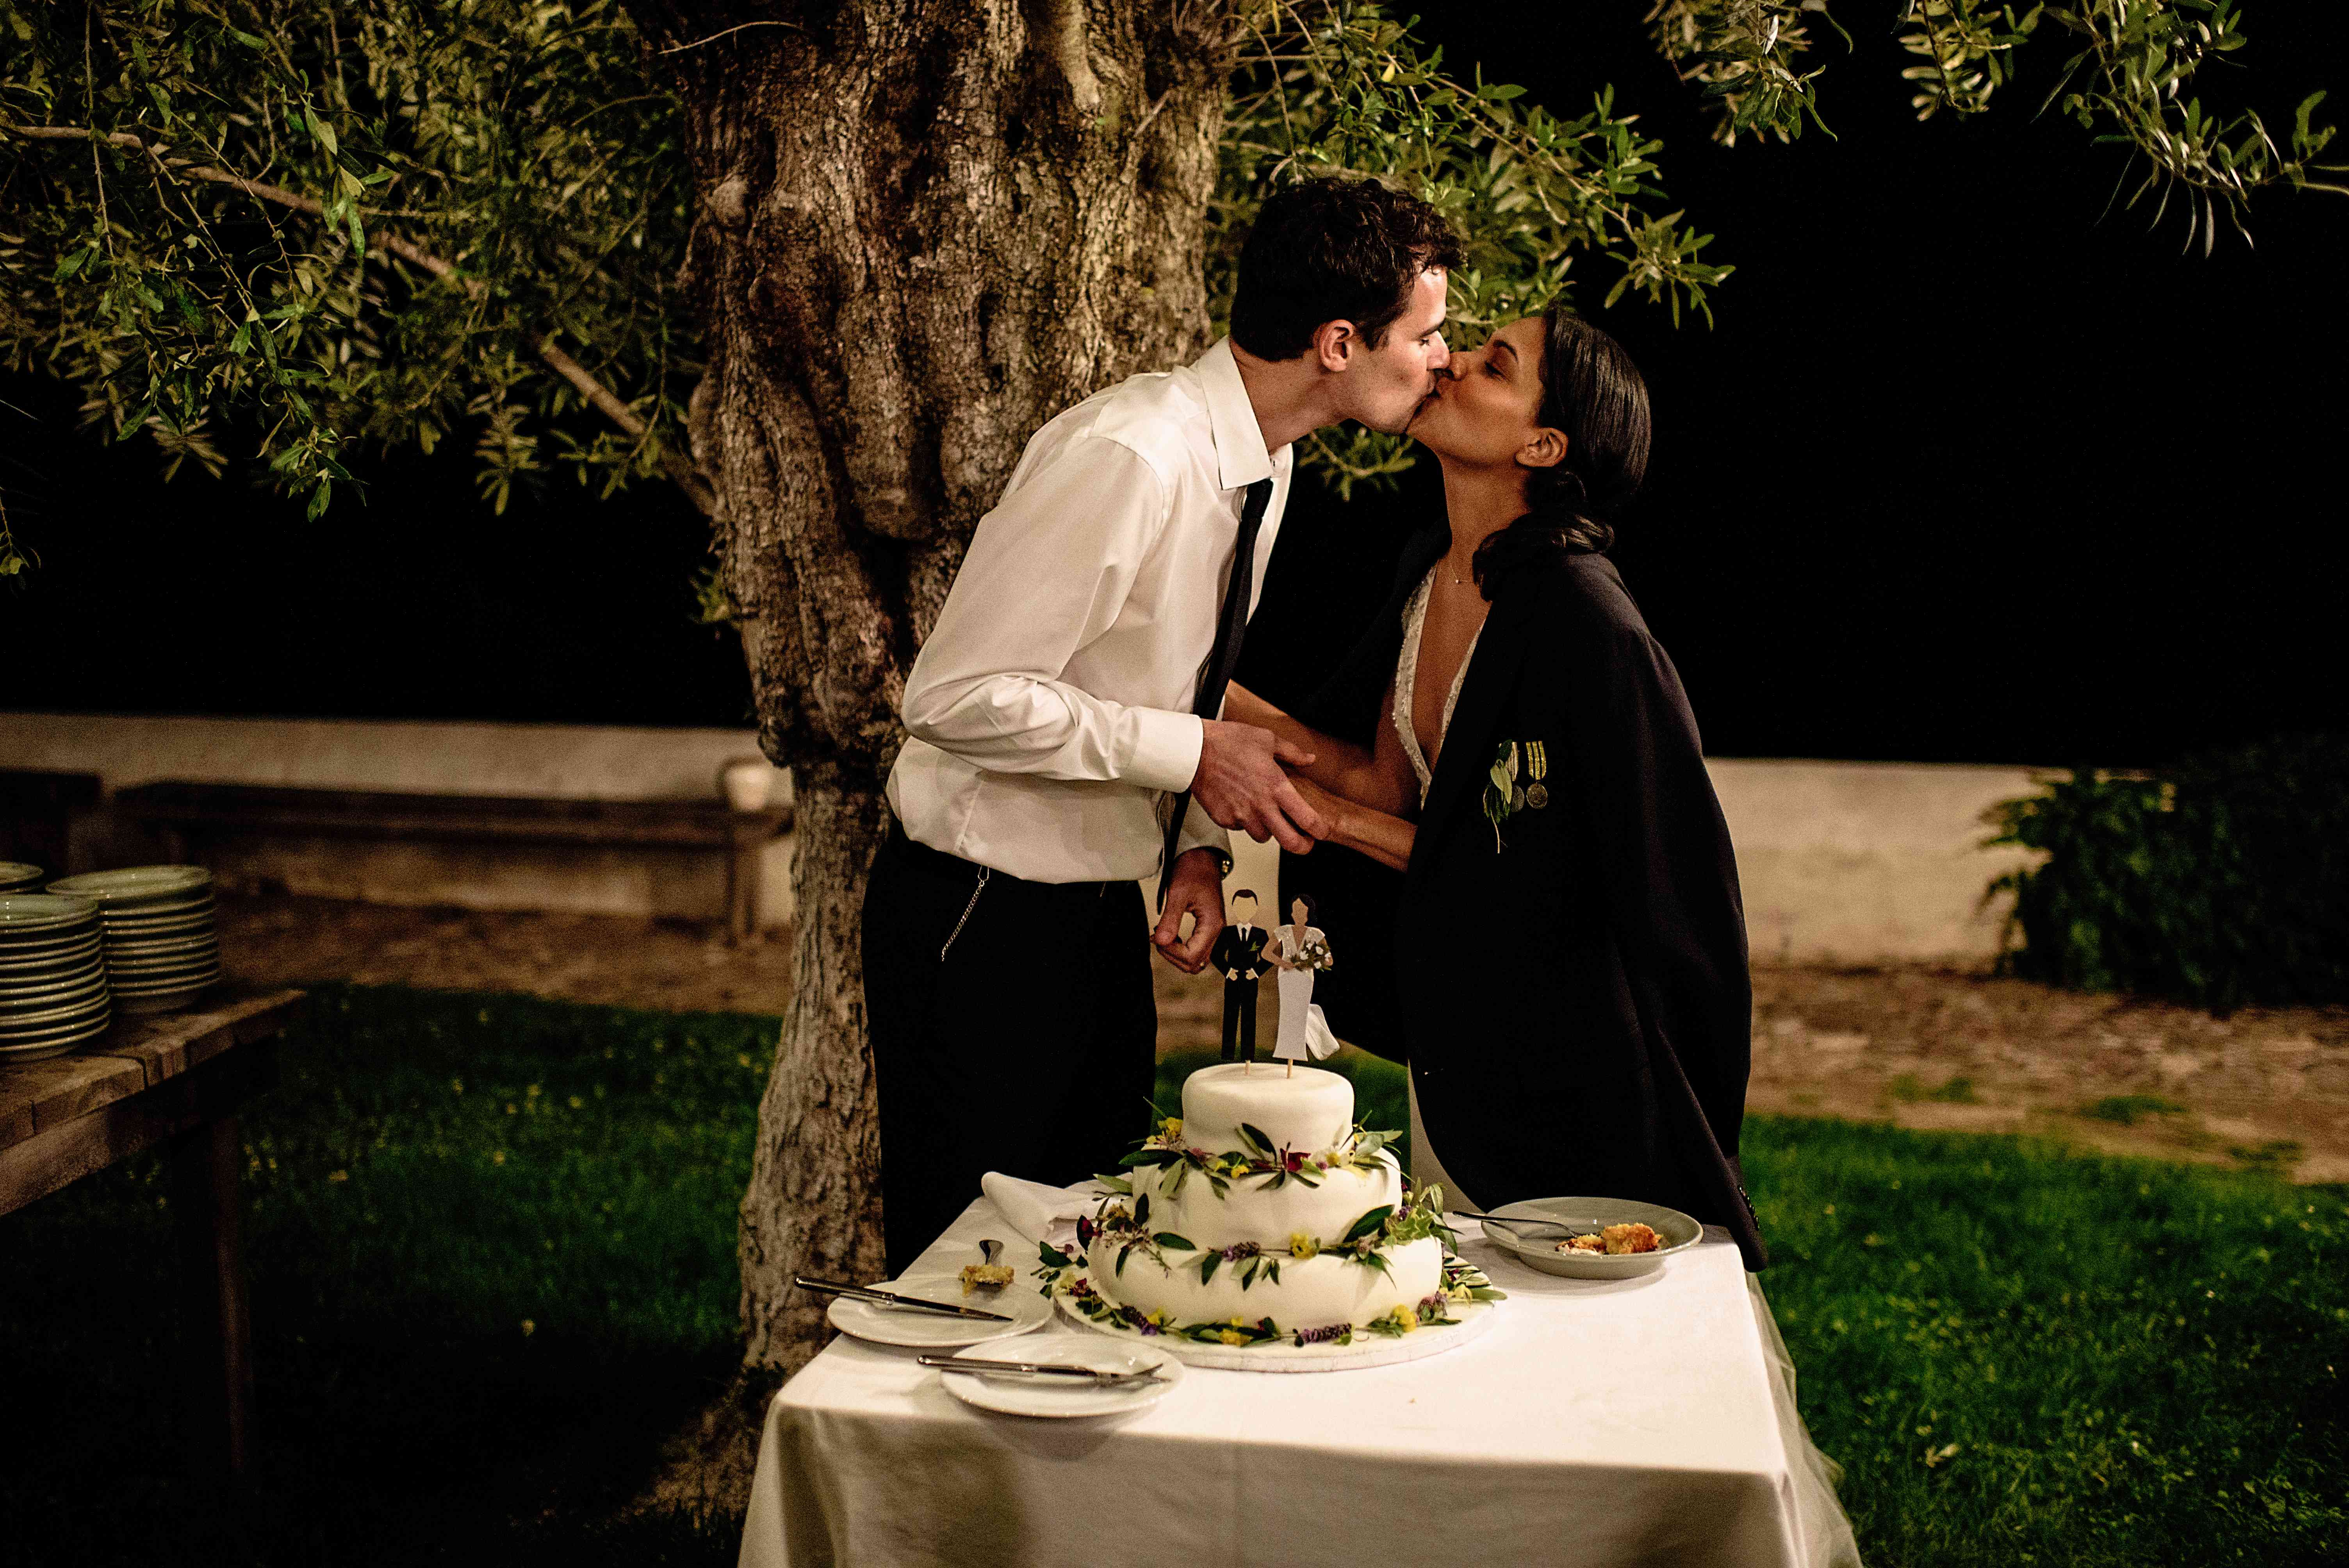 <p>Bride and groom kissing and cutting cake</p><br><br>